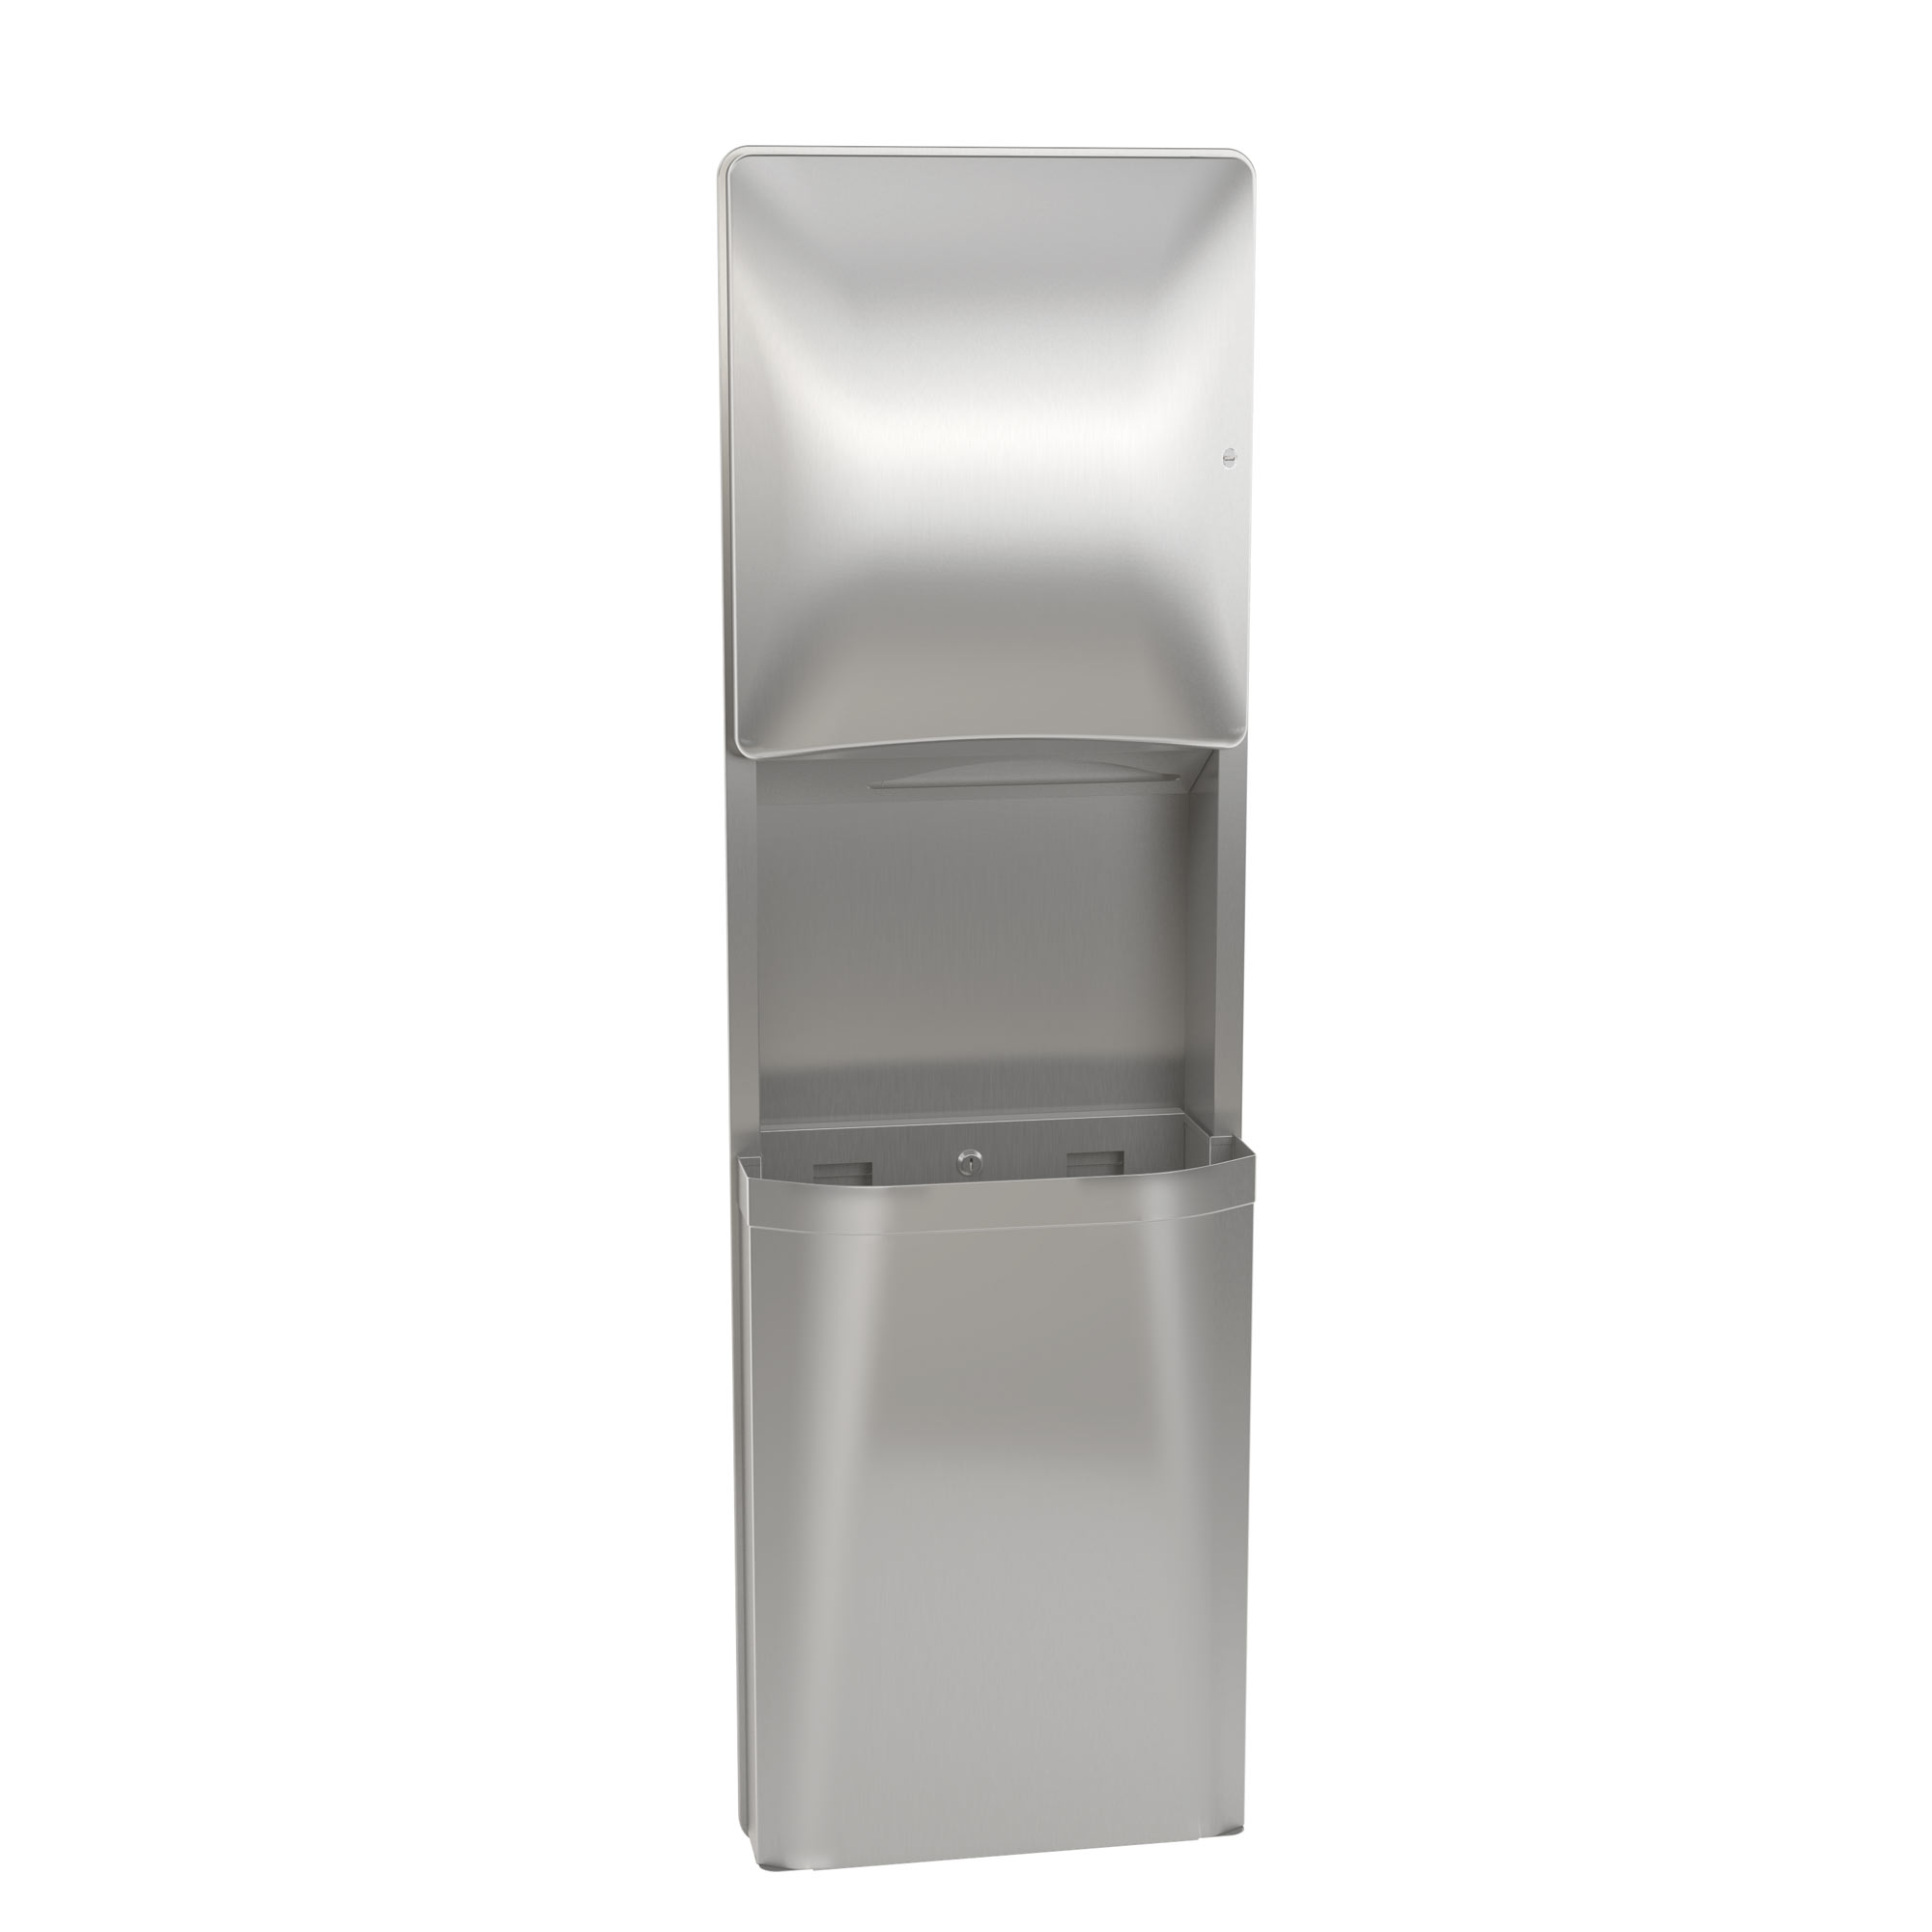 Bradley 2A95-1036 Semi-Recessed Paper Towel & 21 gal. Waste Receptacle (No Dispenser)